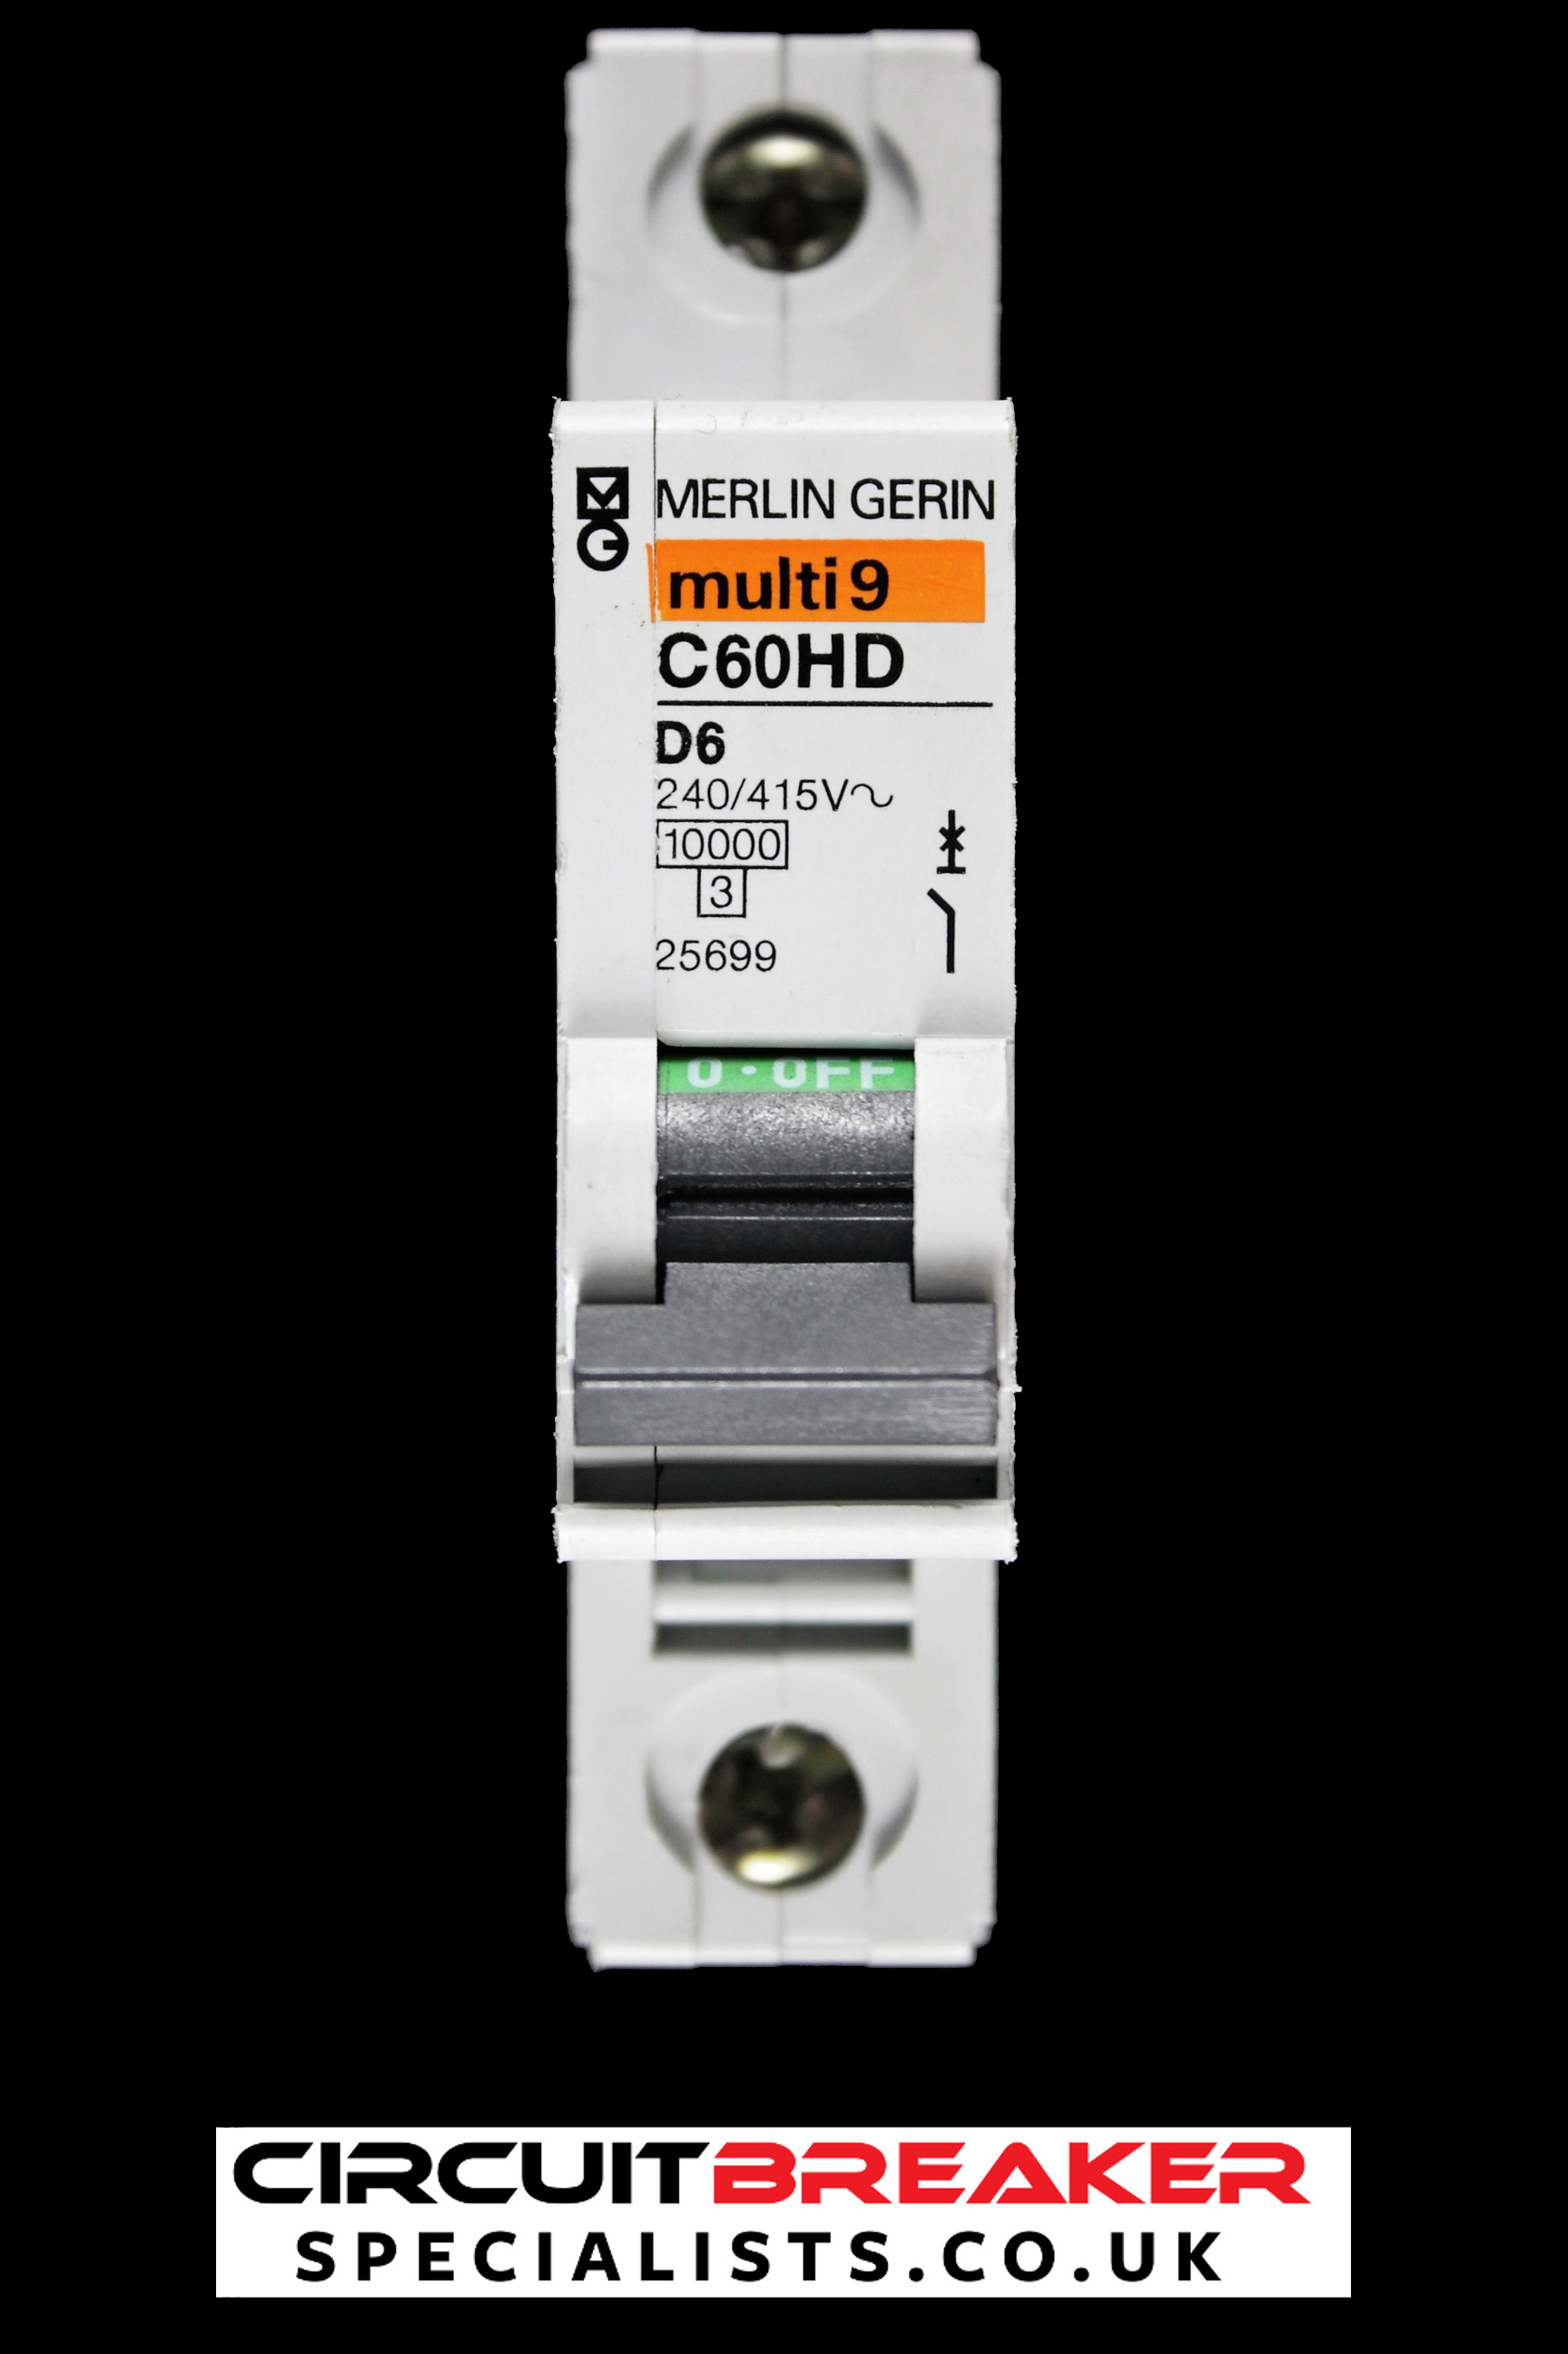 MERLIN GERIN 6 AMP TYPE D 10 kA MCB CIRCUIT BREAKER 25699 C60HD